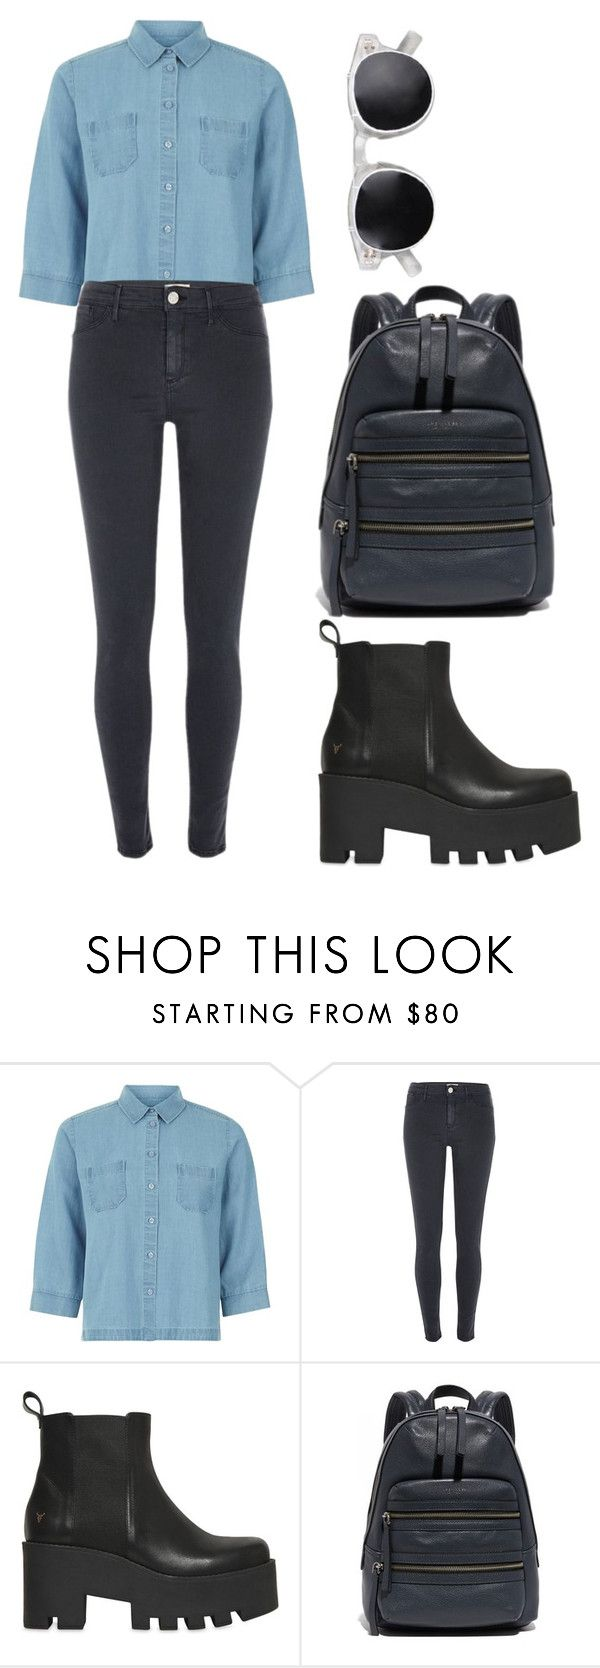 """""""a touch of blue"""" by just-hope ❤ liked on Polyvore featuring Hobbs, River Island, Windsor Smith, Marc Jacobs, simple, Blue and Leggings"""